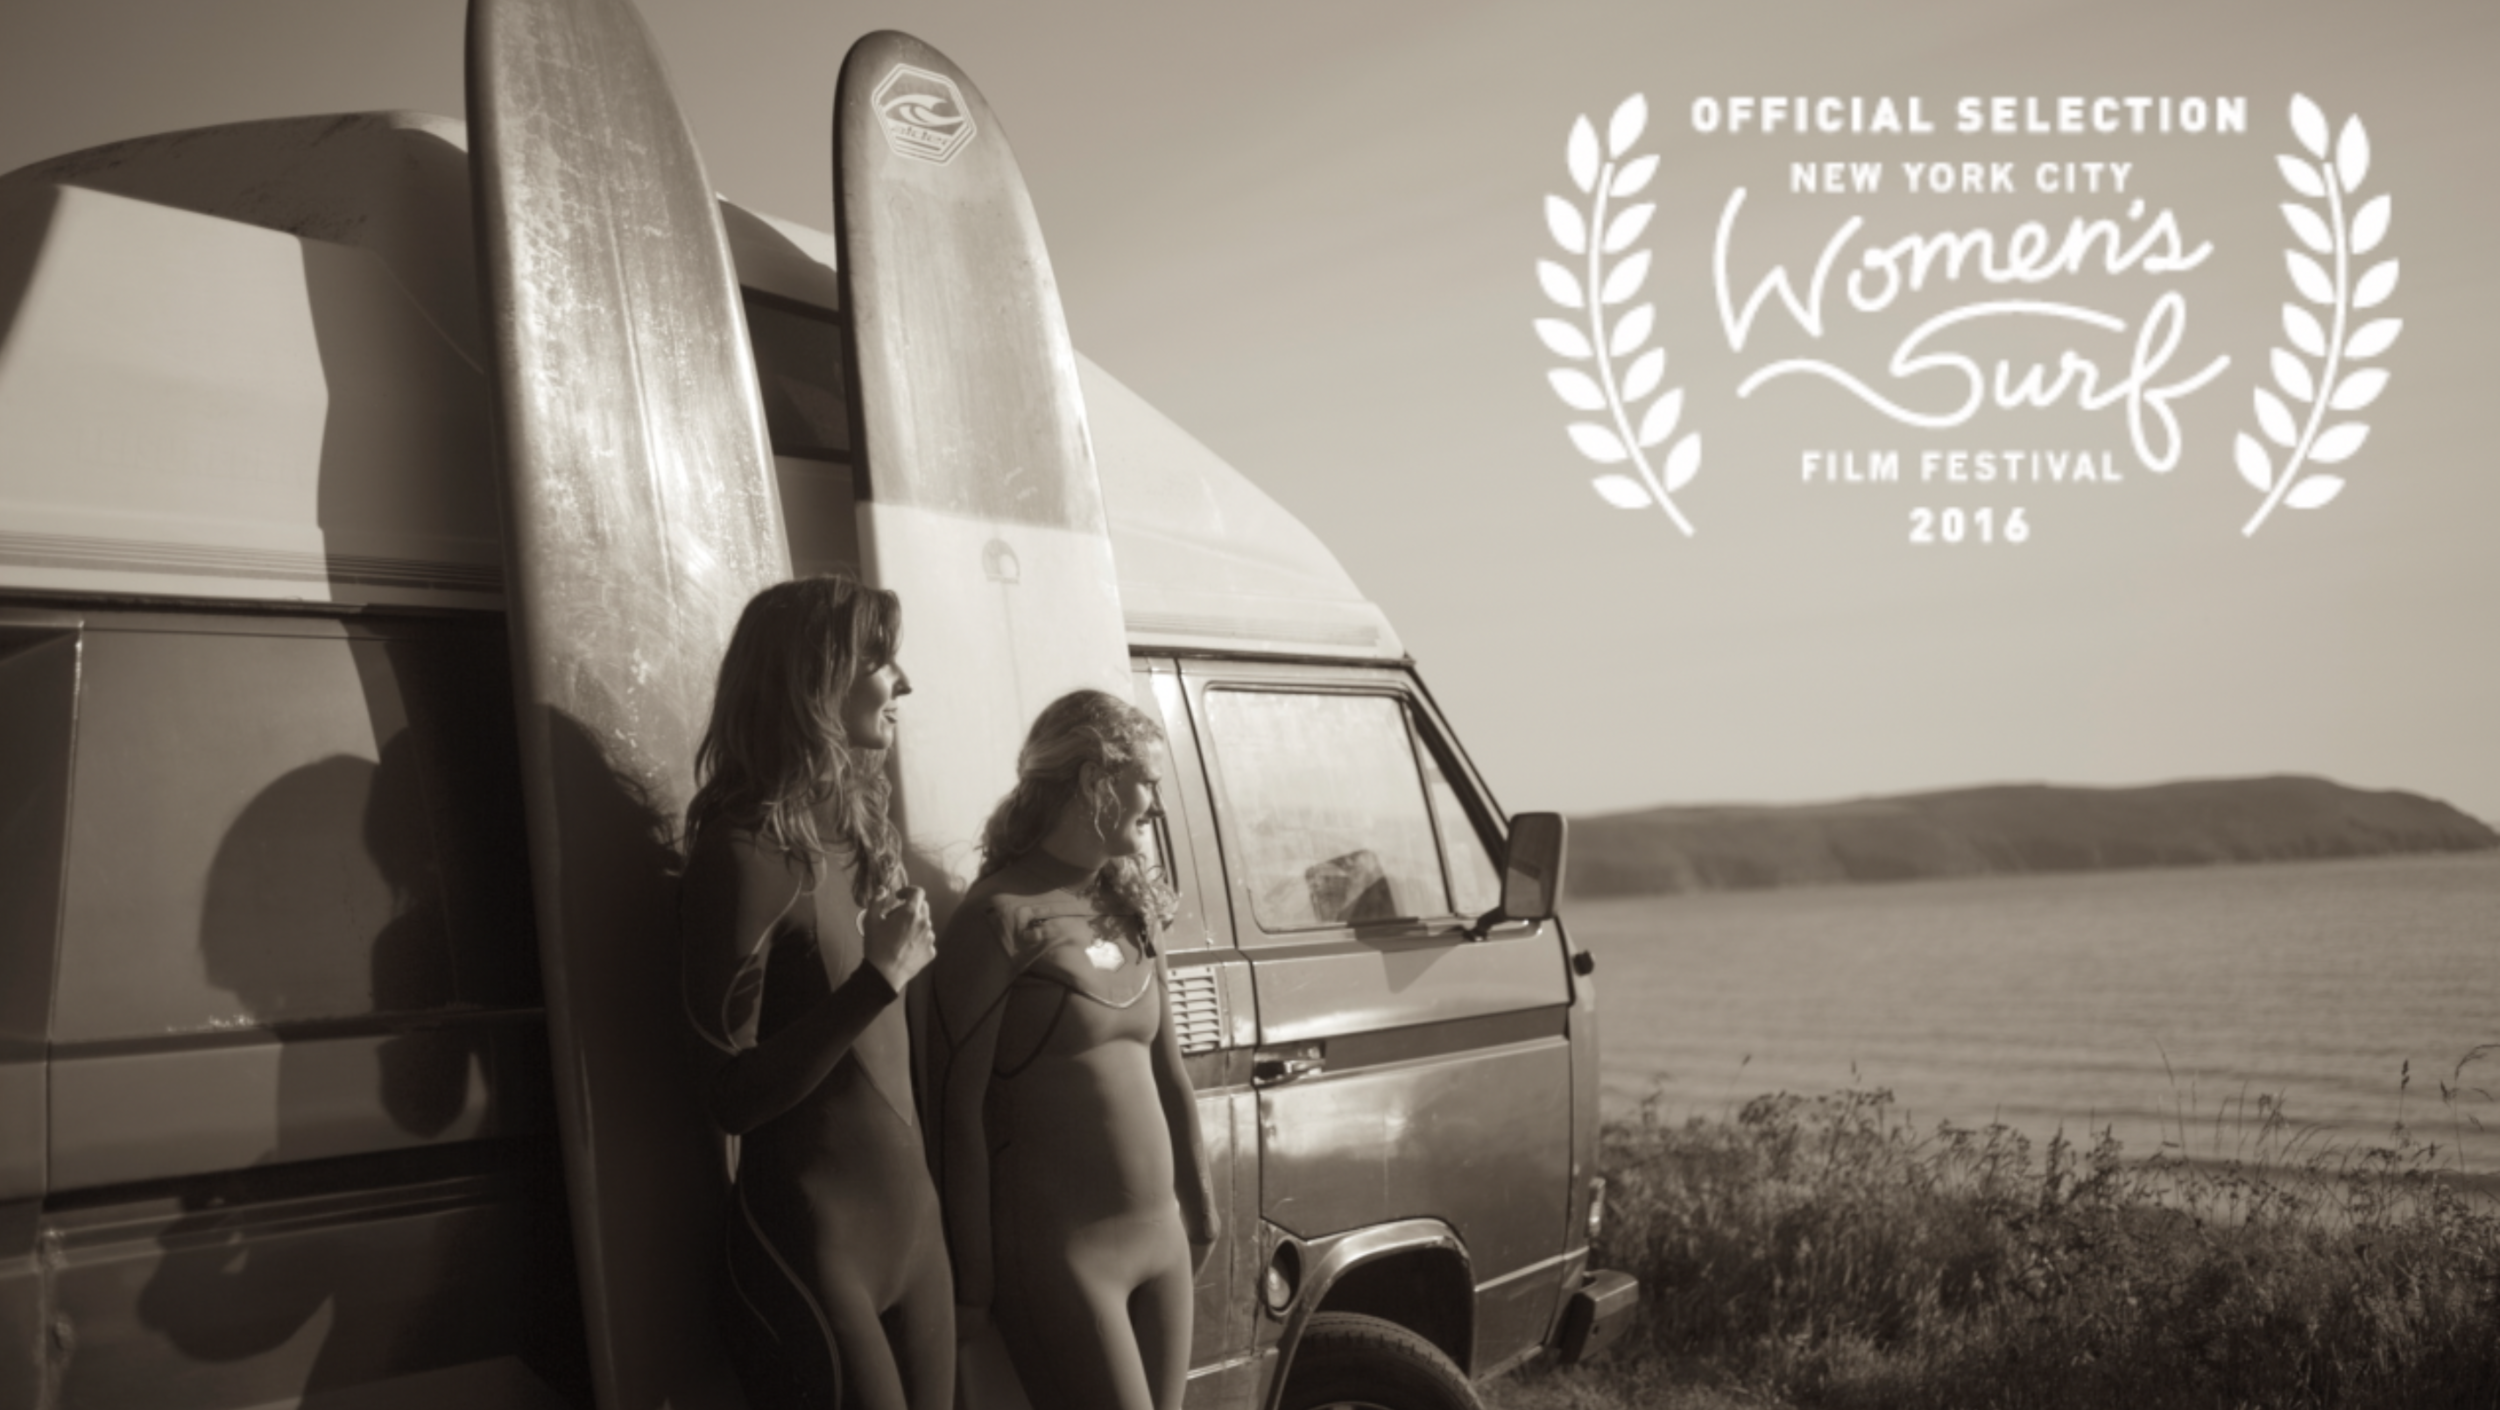 officescape lava girl surf simon cotter nyc womens surf film festival